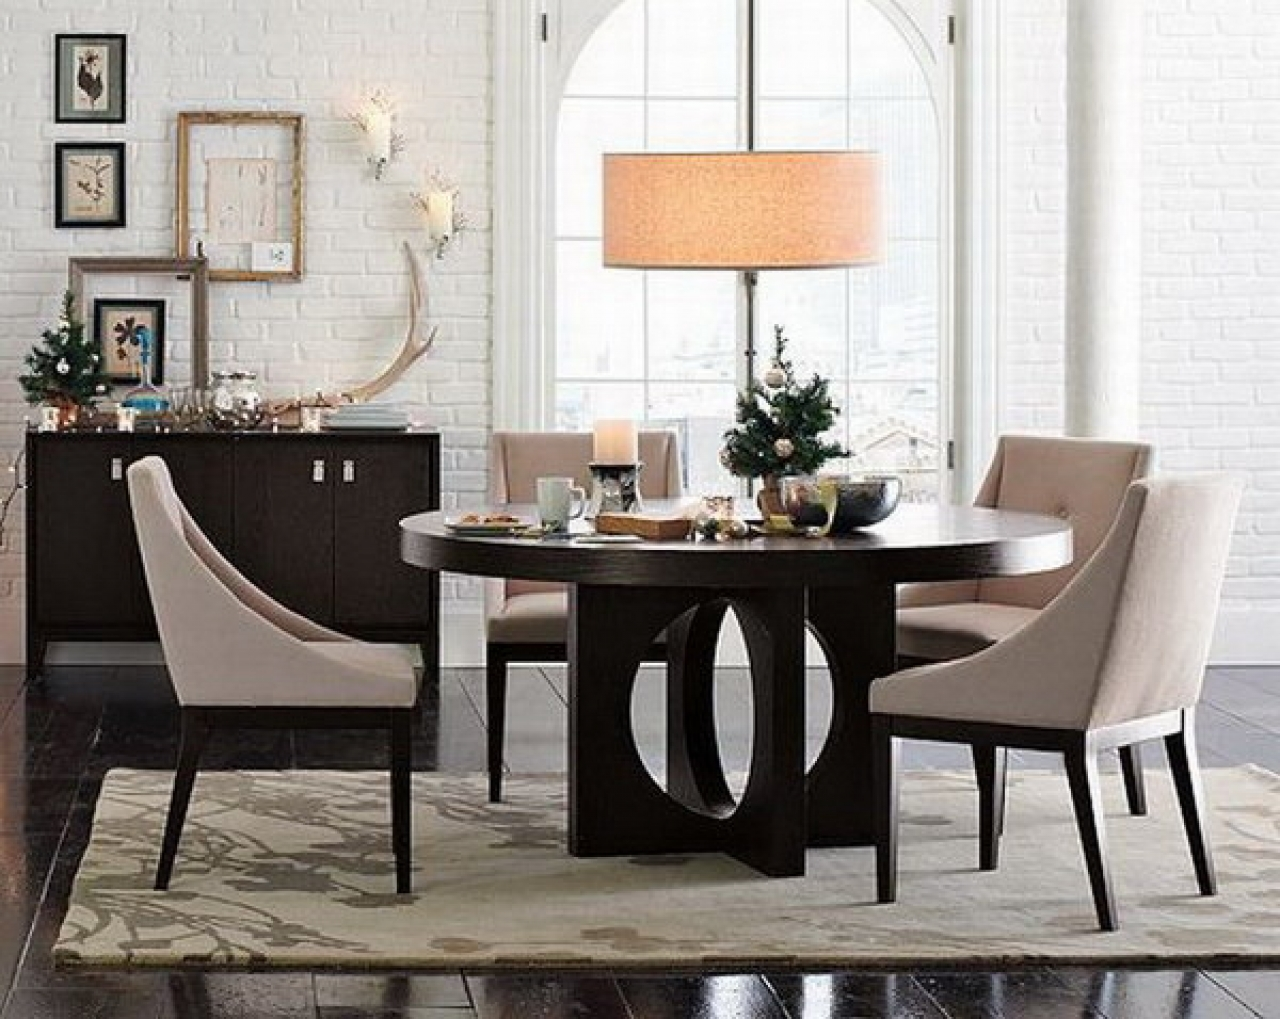 Dinning-Room-Sets-Design-Ideas-Natural-Ornament-Modern-Dining-Room-Furniture-Interior-Design-Ideas